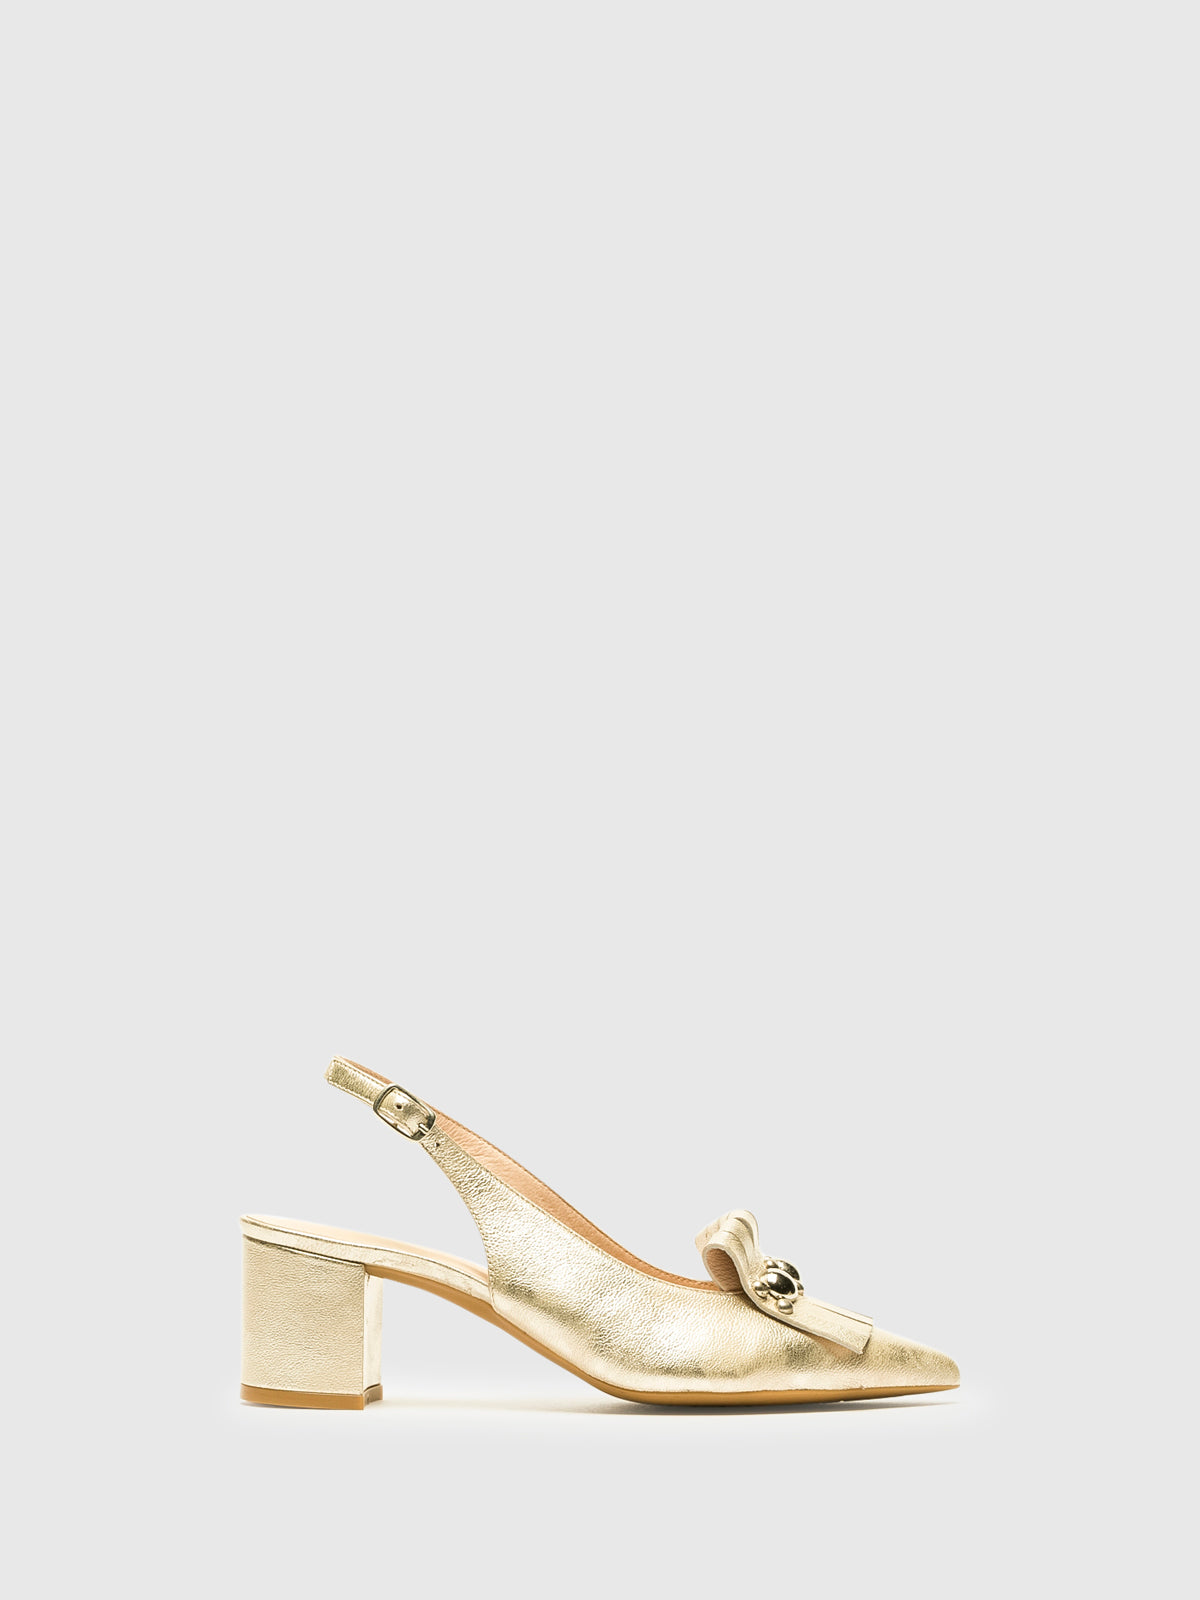 Sofia Costa Gold Sling-Back Pumps Shoes